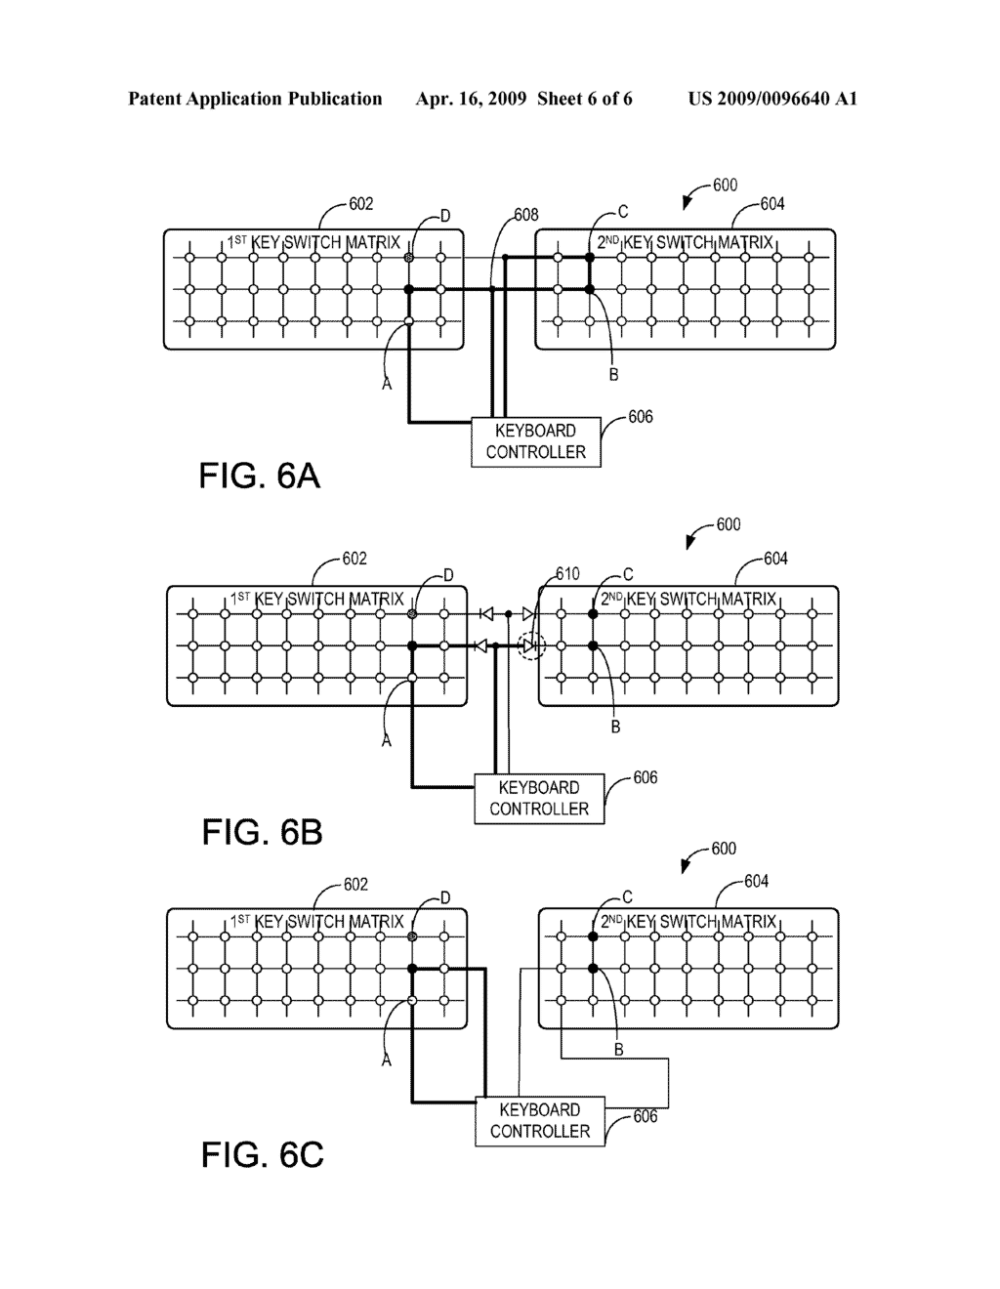 medium resolution of keyboard with plural key switch matrices to detect ghosting diagram schematic and image 07